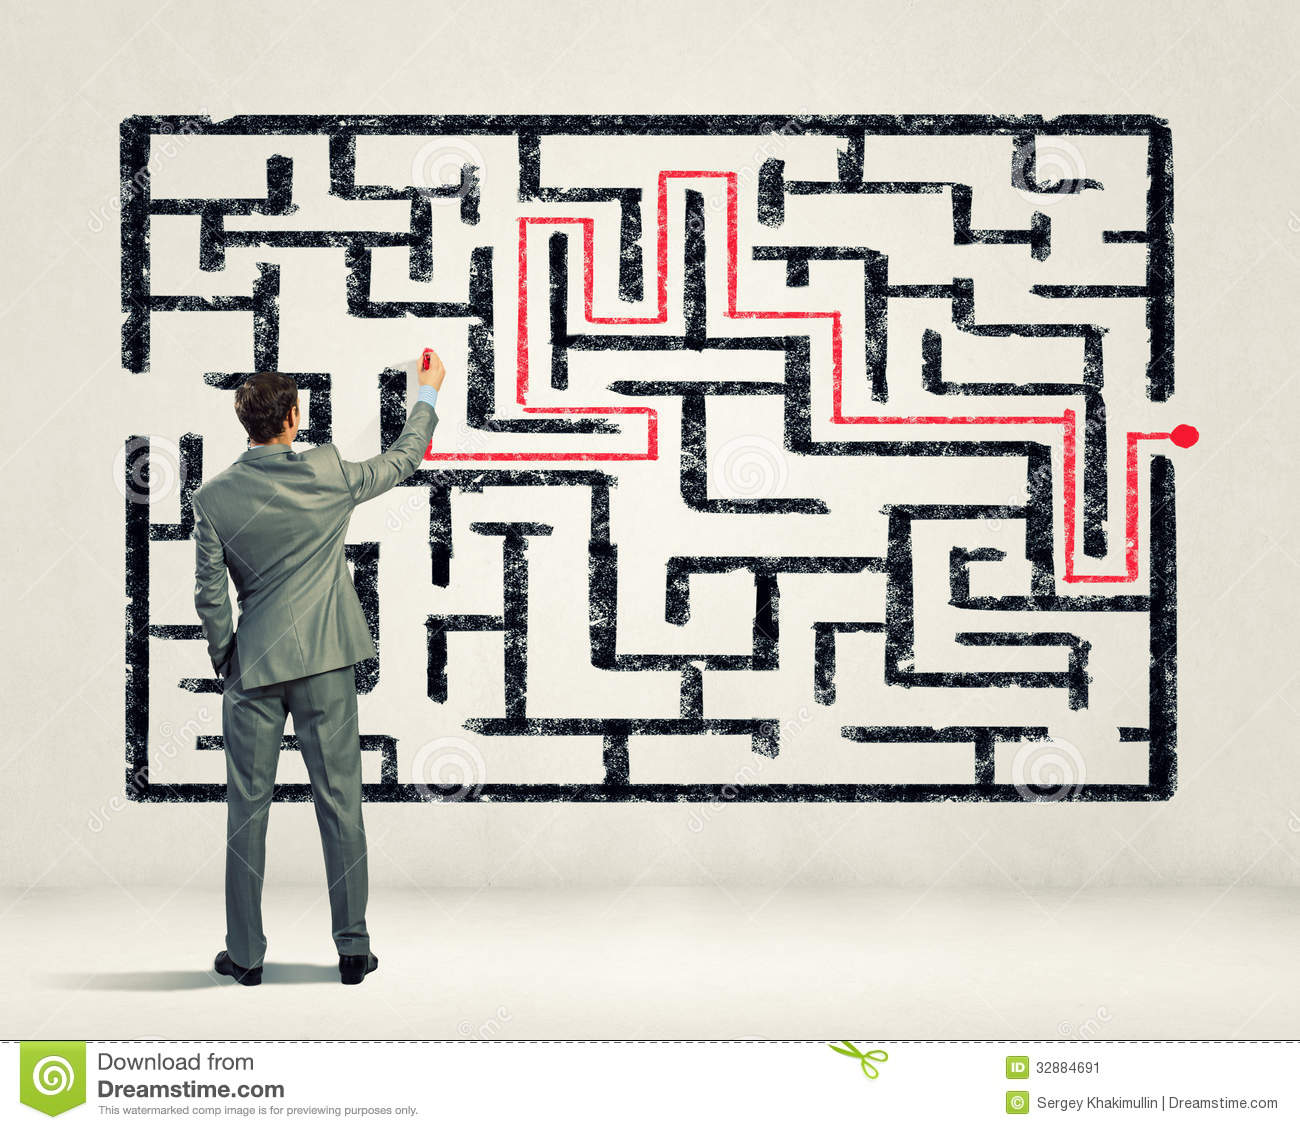 Businessman Solving Labyrinth Problem Stock Image - Image of exit